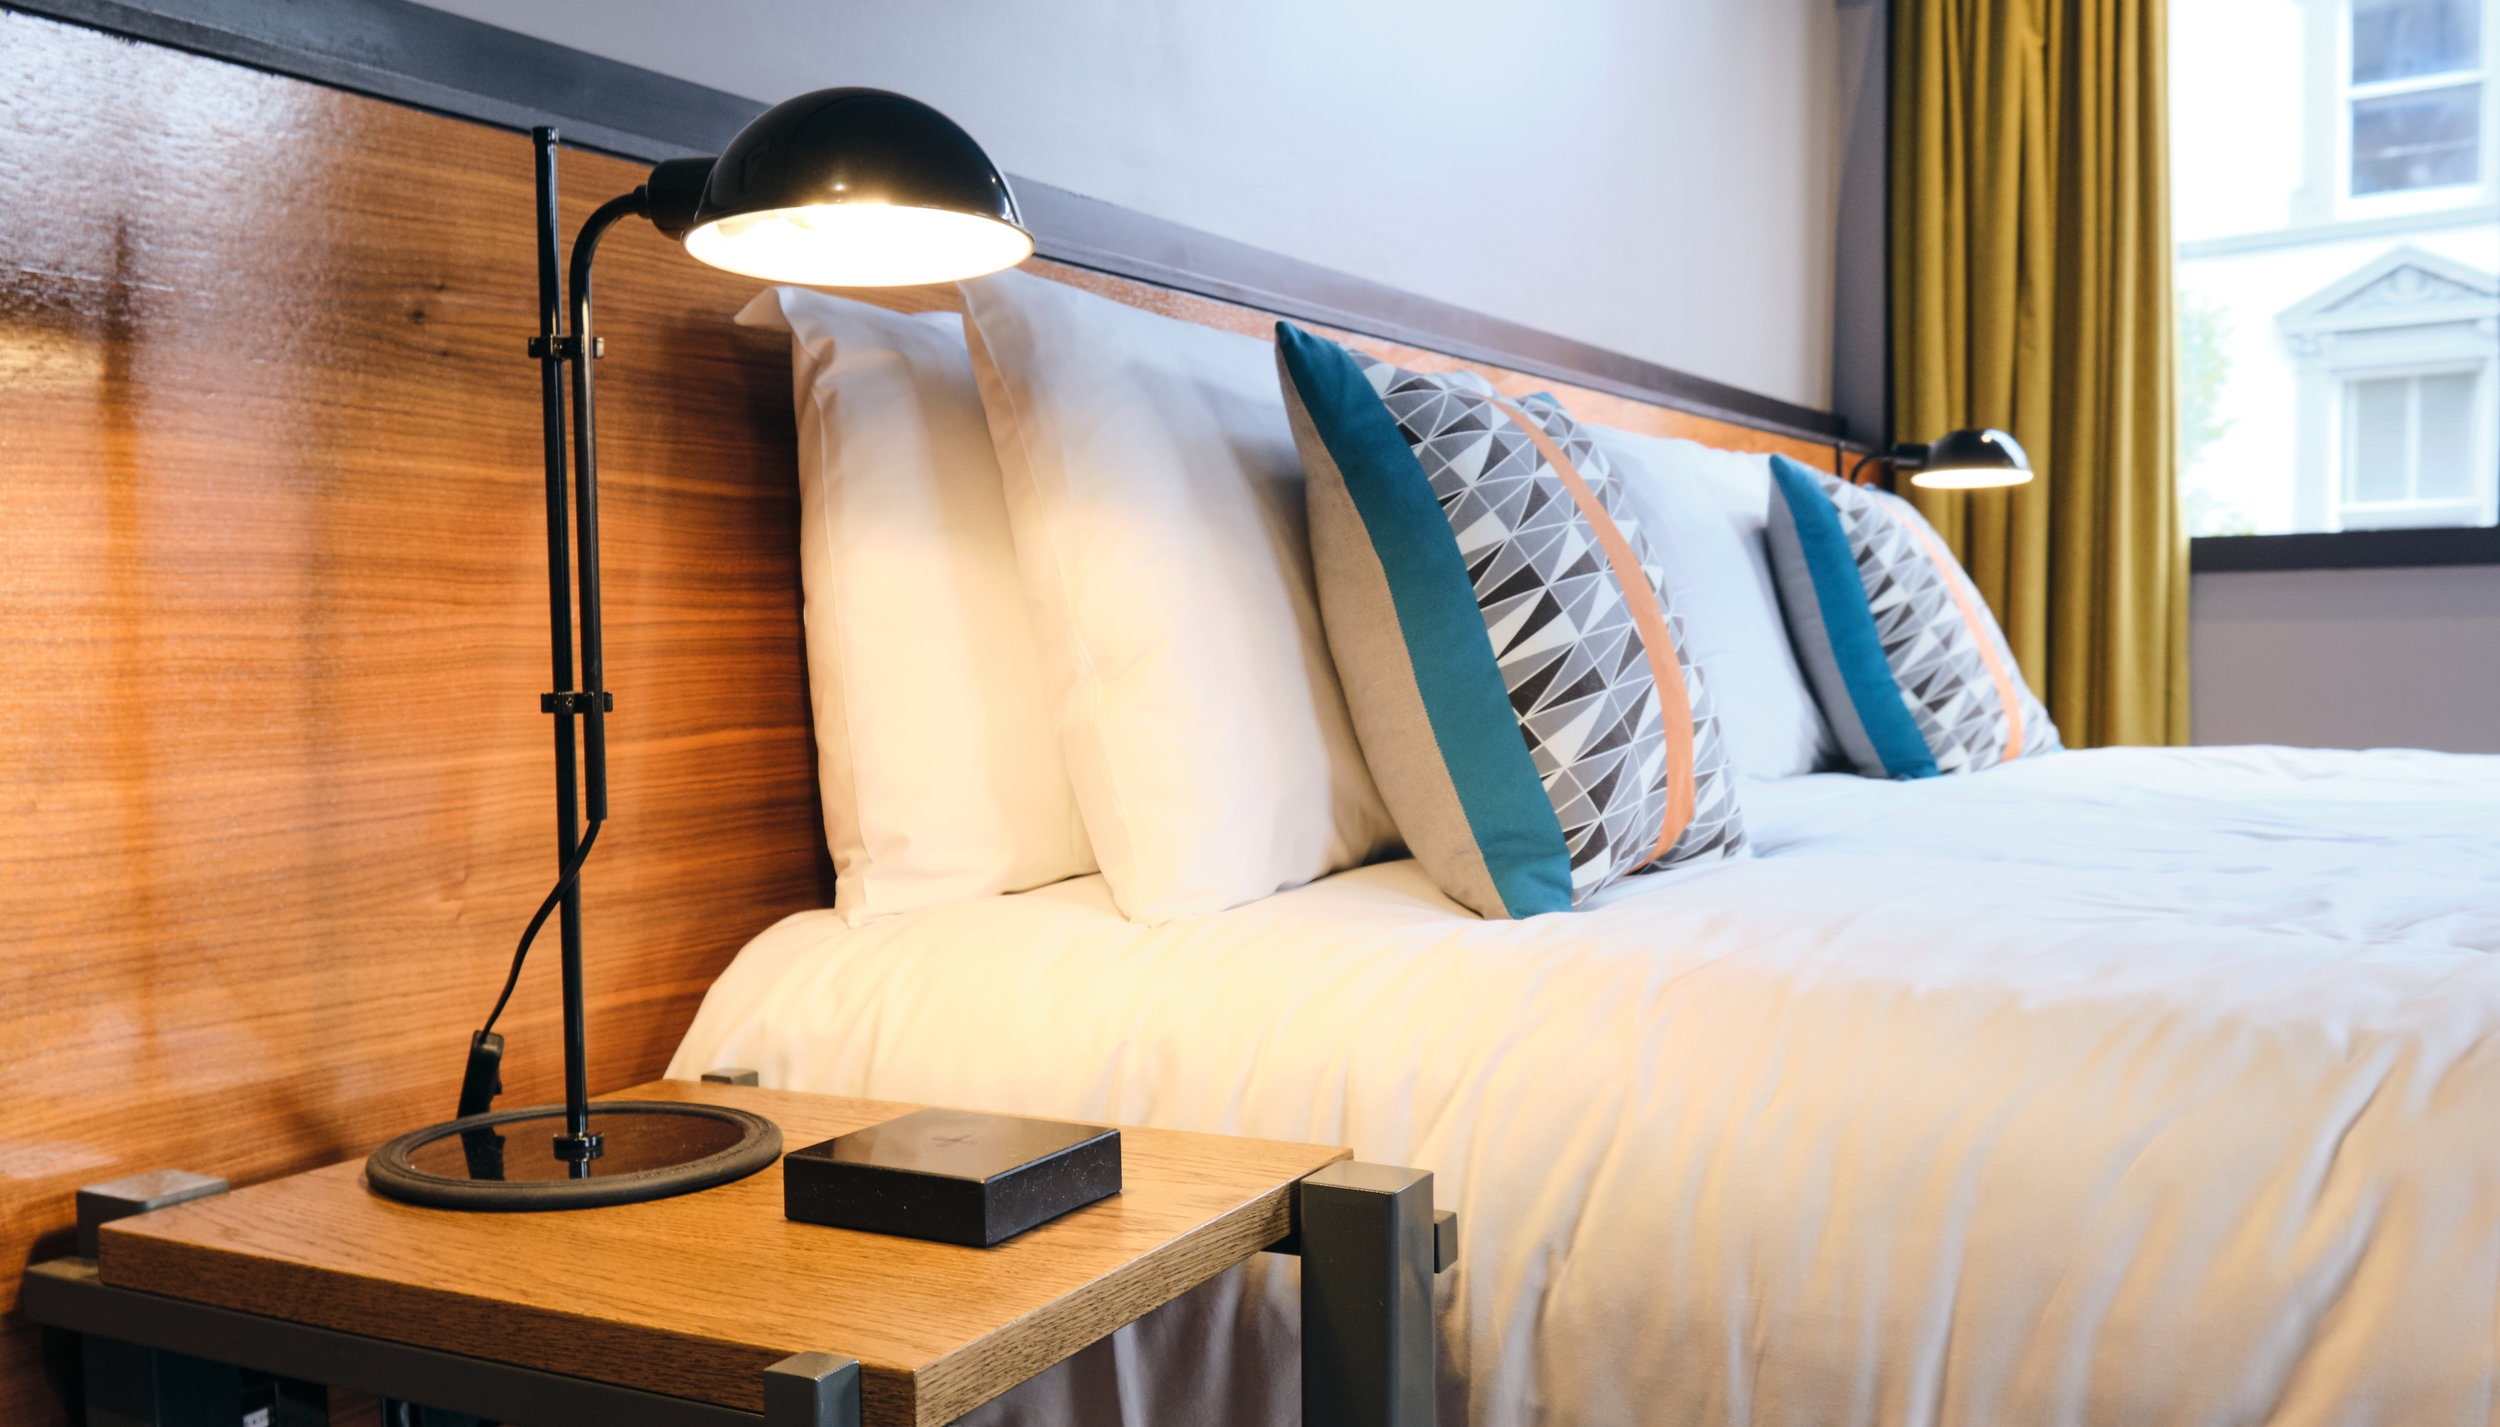 double bed in hotel room with Chargifi SmartSpot on bedside table